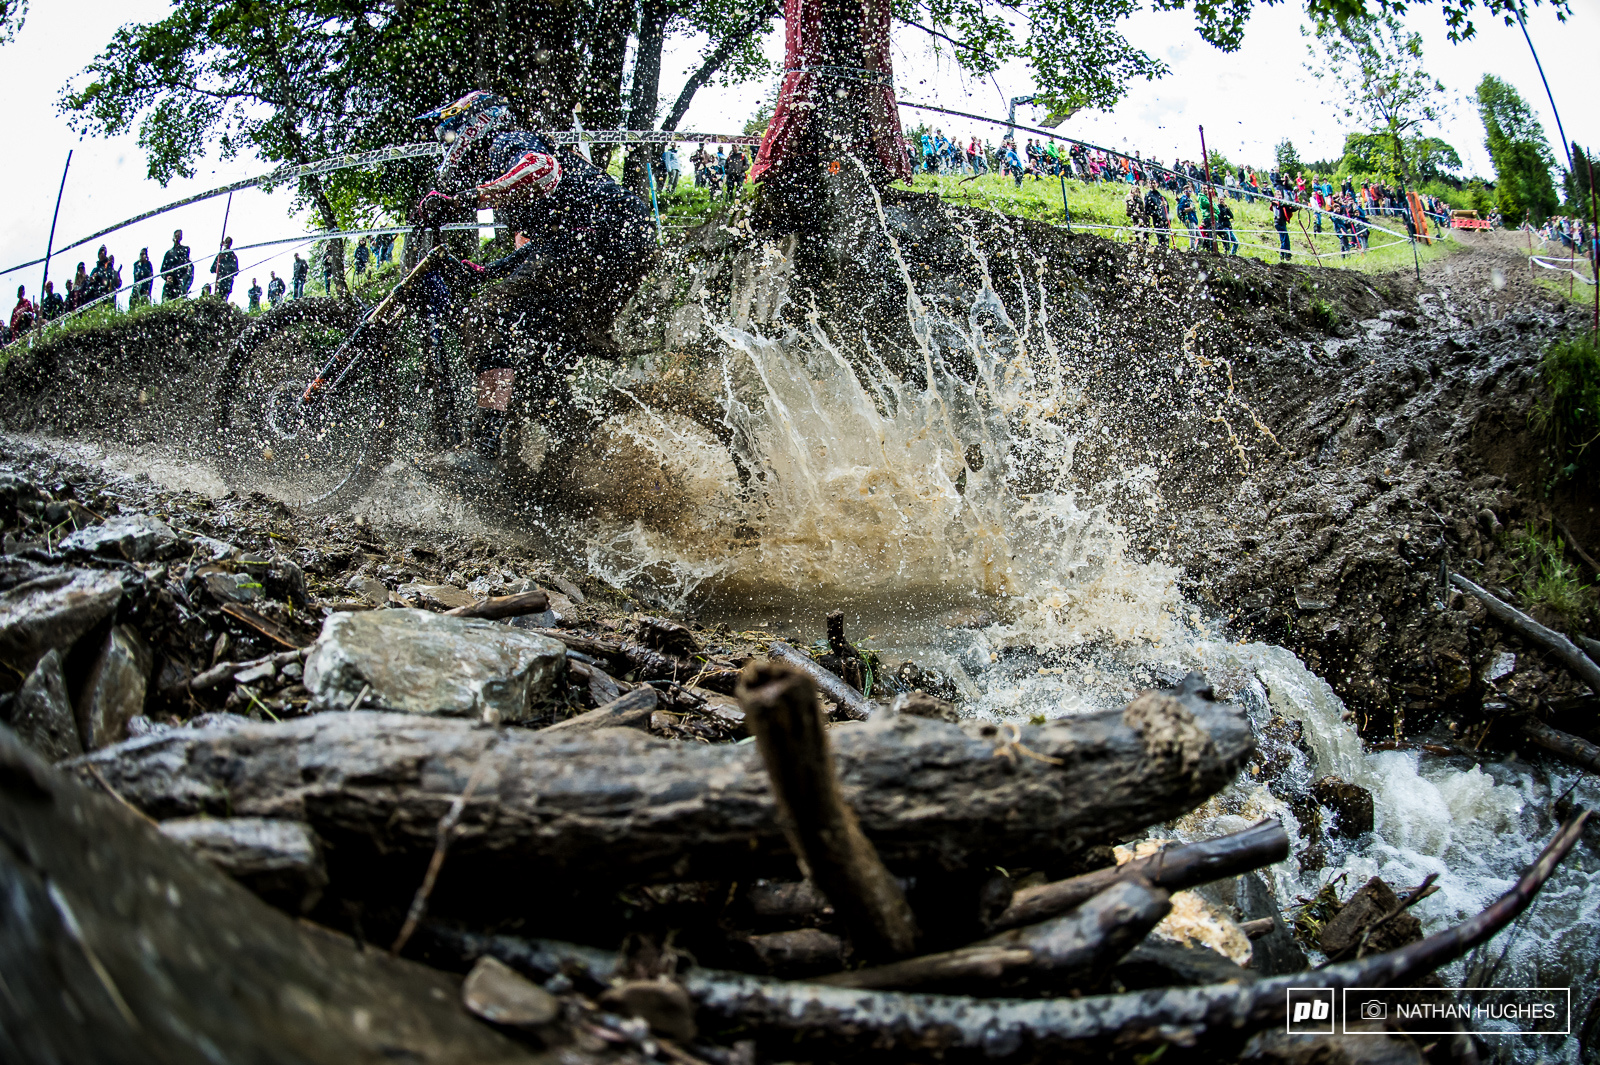 Jill Kinter smashing through the stream on the way to 5th and the mission to bring home the Queen of Crankworx grand prize.